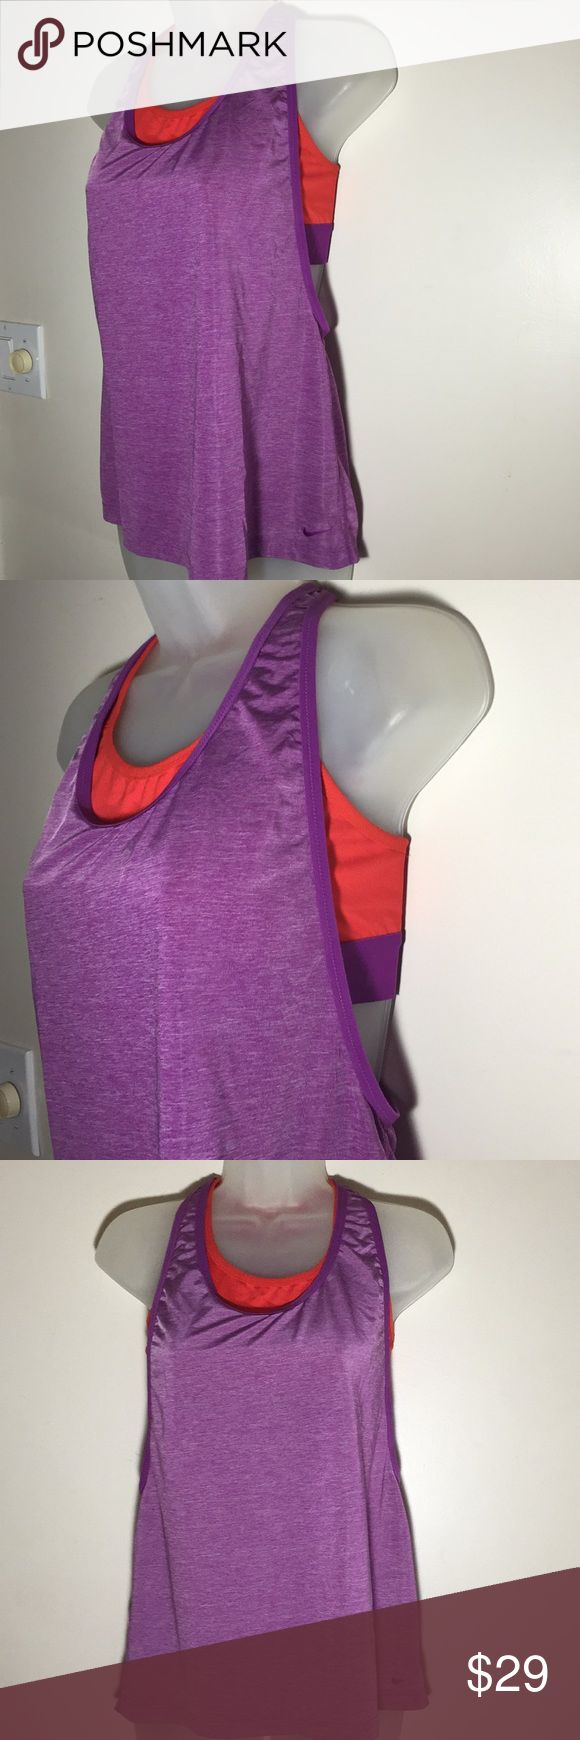 Nike tank top with sports bra purple orange M Nike like new exercise tank top with built in bra. Purple and orange. Find and stylish. No stains or holes. Make an offer or bundle with another item for 10 percent off of your entire order. Nike Tops Tank Tops